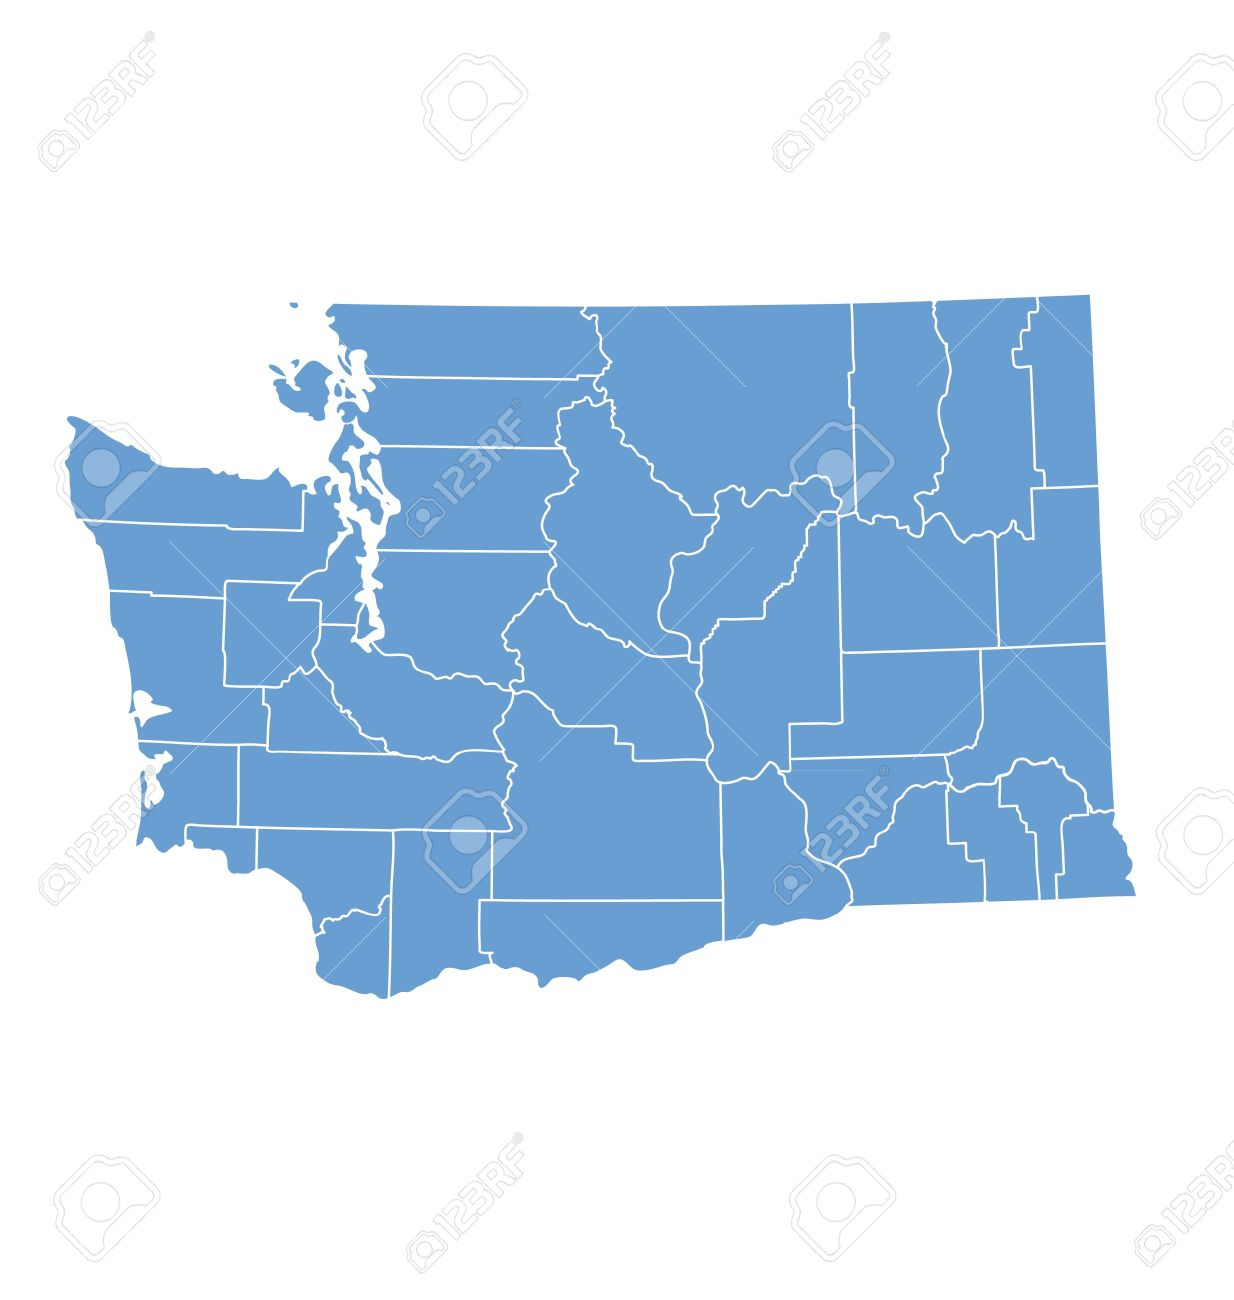 Washington State Map By Counties Royalty Free Cliparts  Vectors  And     Vector   Washington State Map by counties